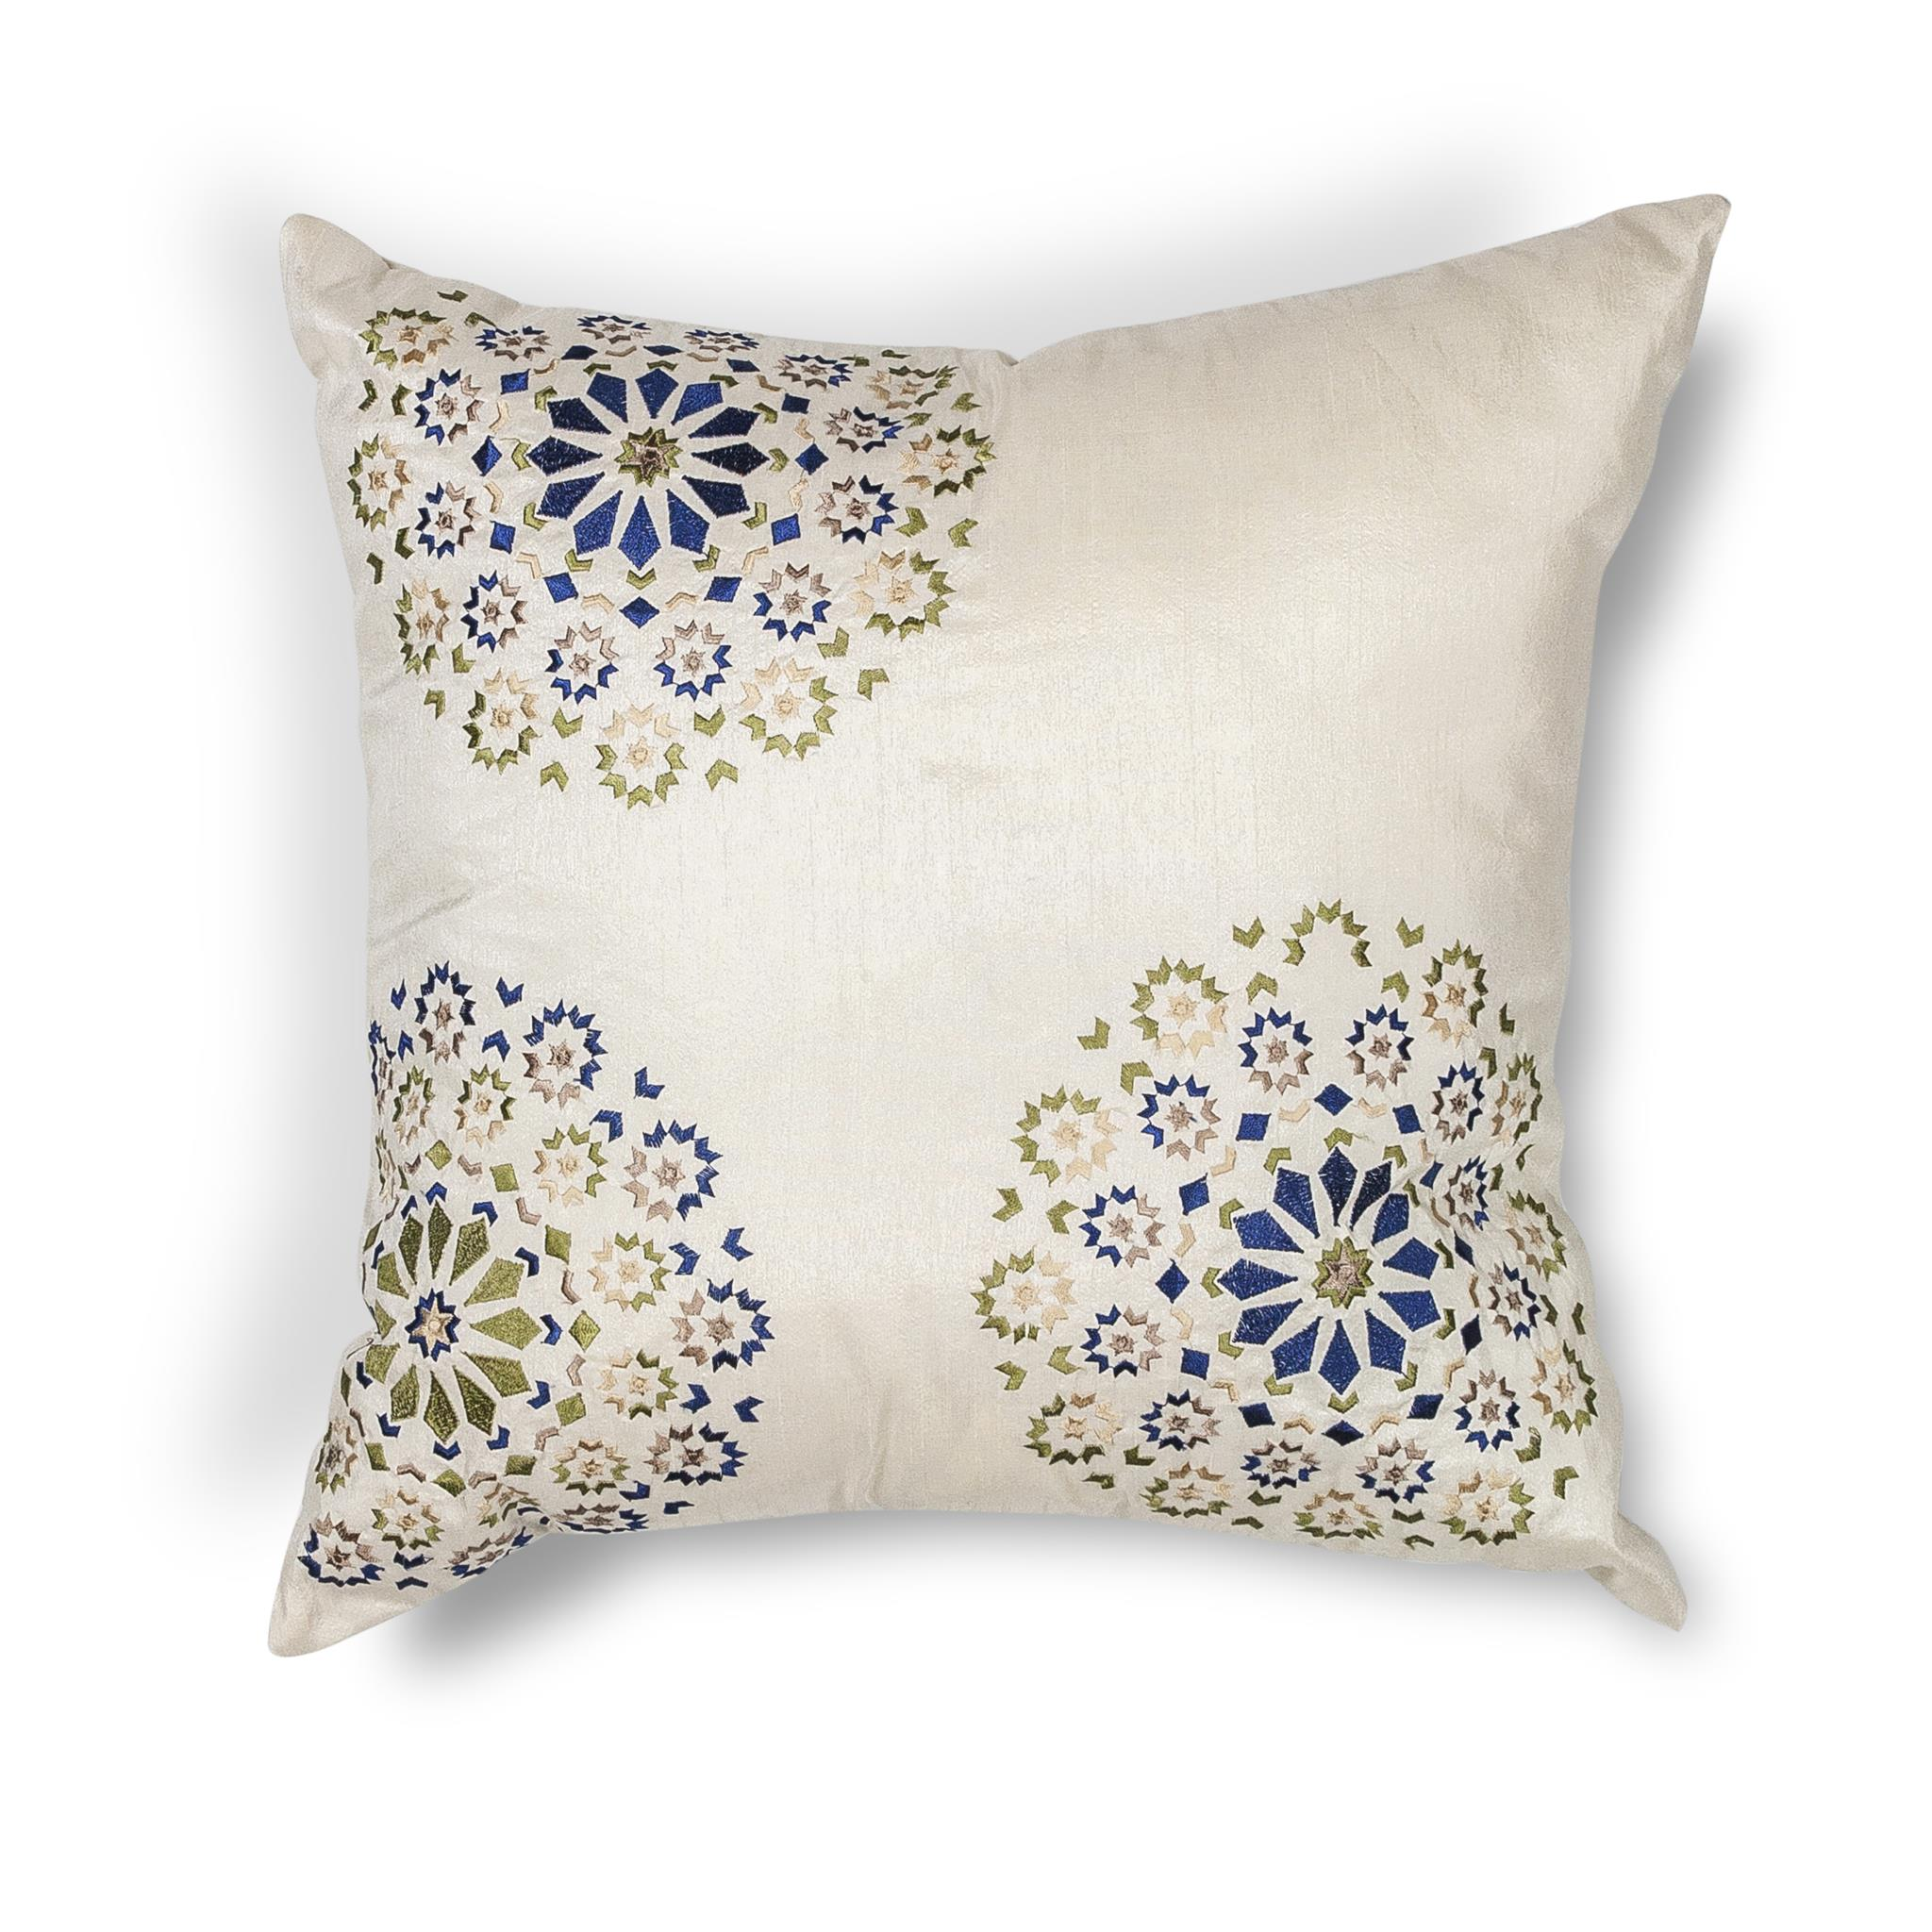 L205 Donny Osmond Home Ivory-Blue Suzani Pillow